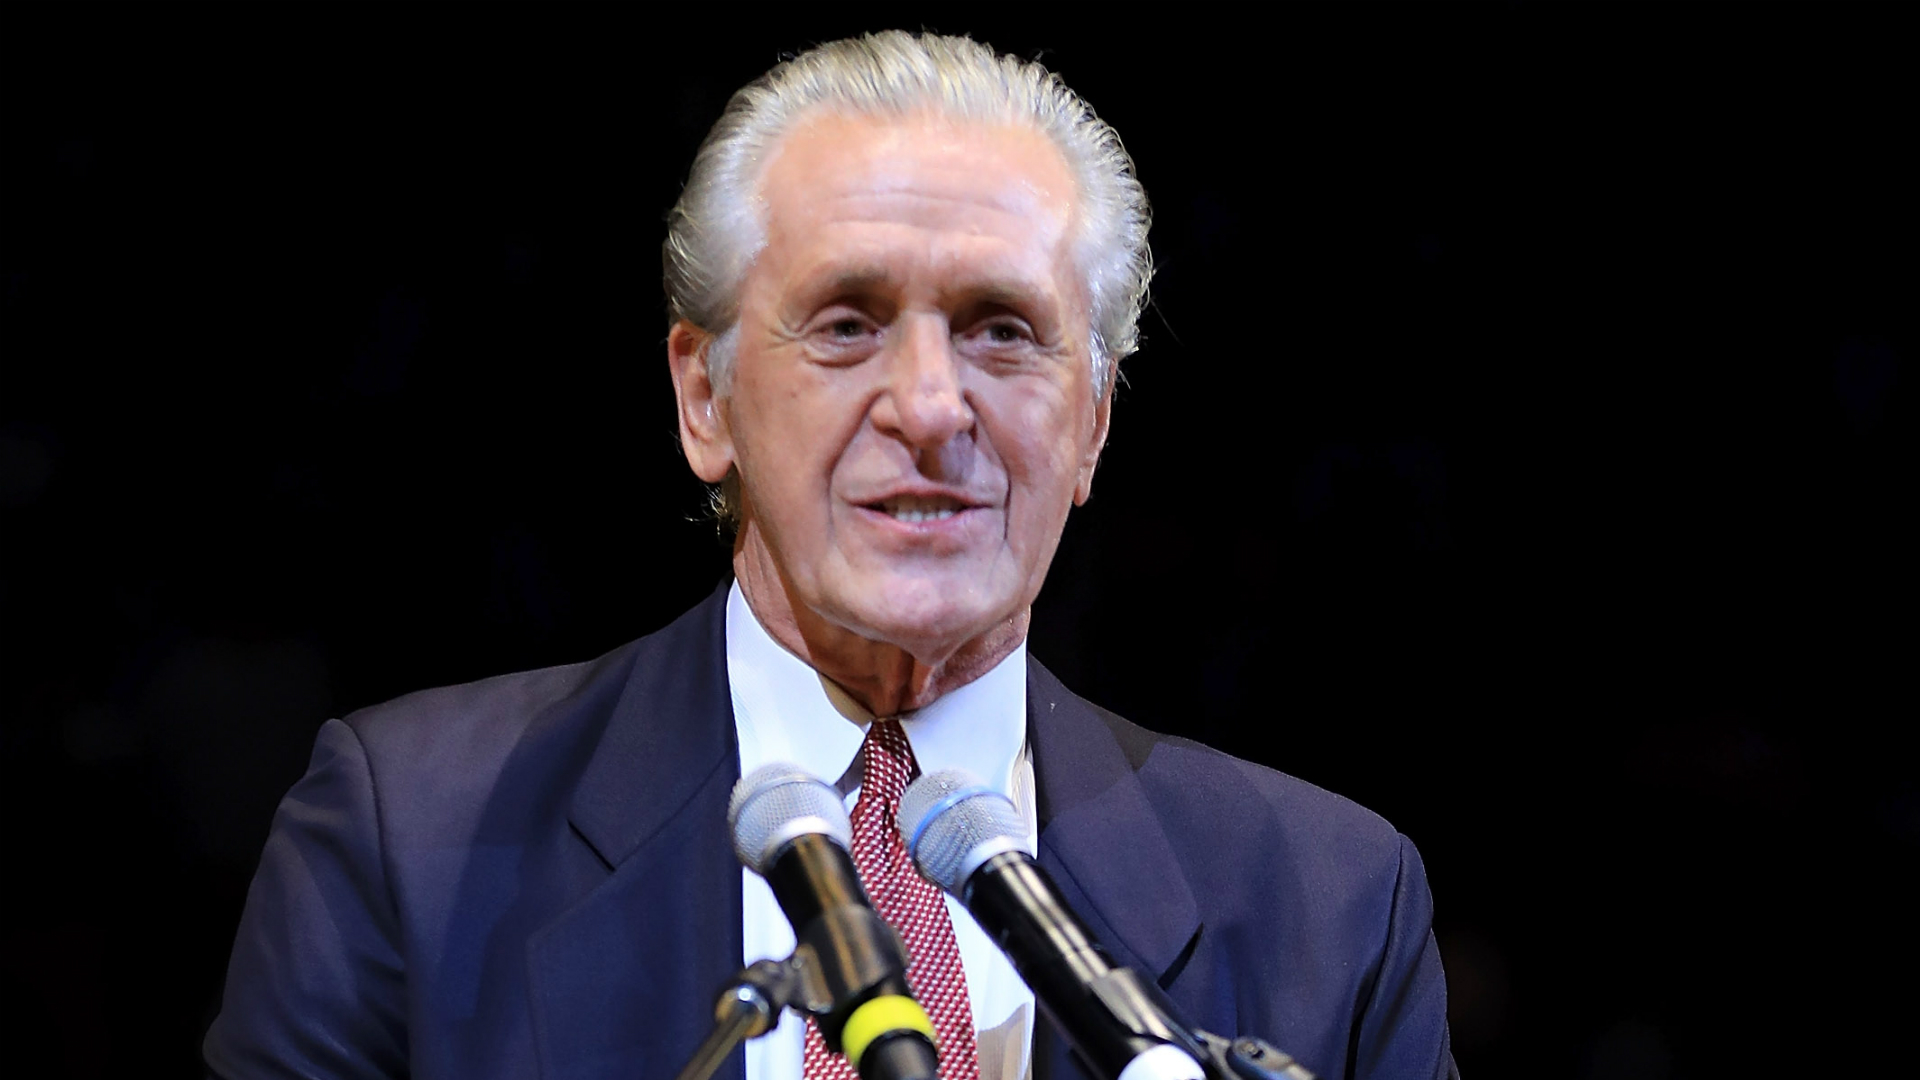 Pat Riley opens up about angry feelings after LeBron left Miami